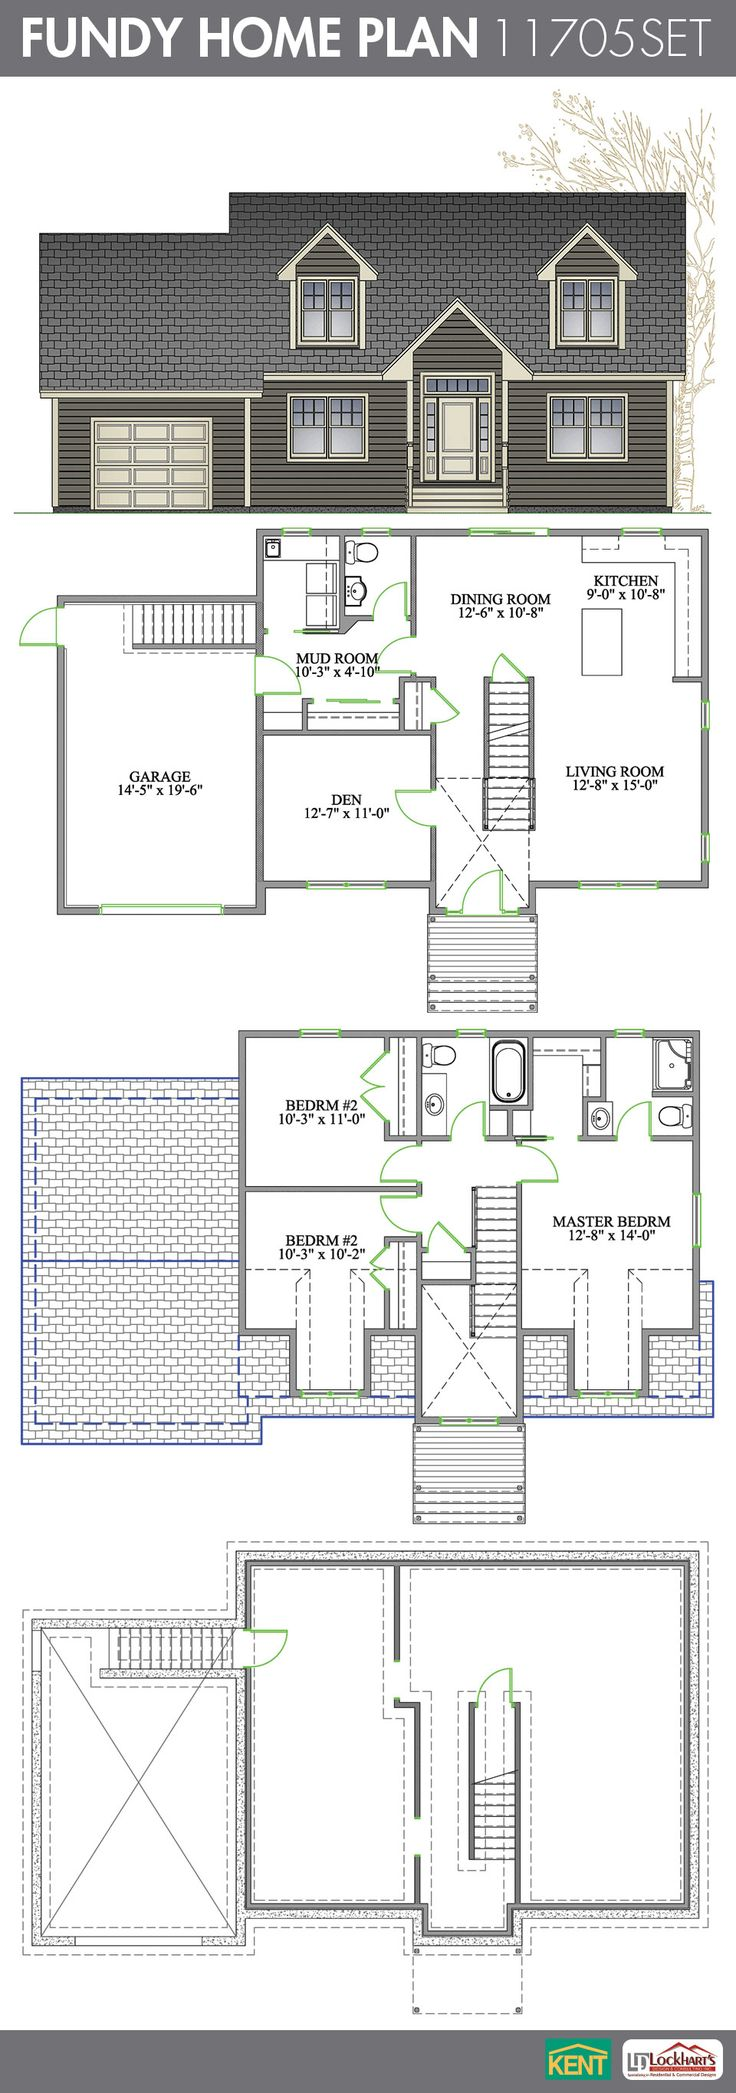 10 best images about round 3 on pinterest house plans for Cape cod house plans open floor plan